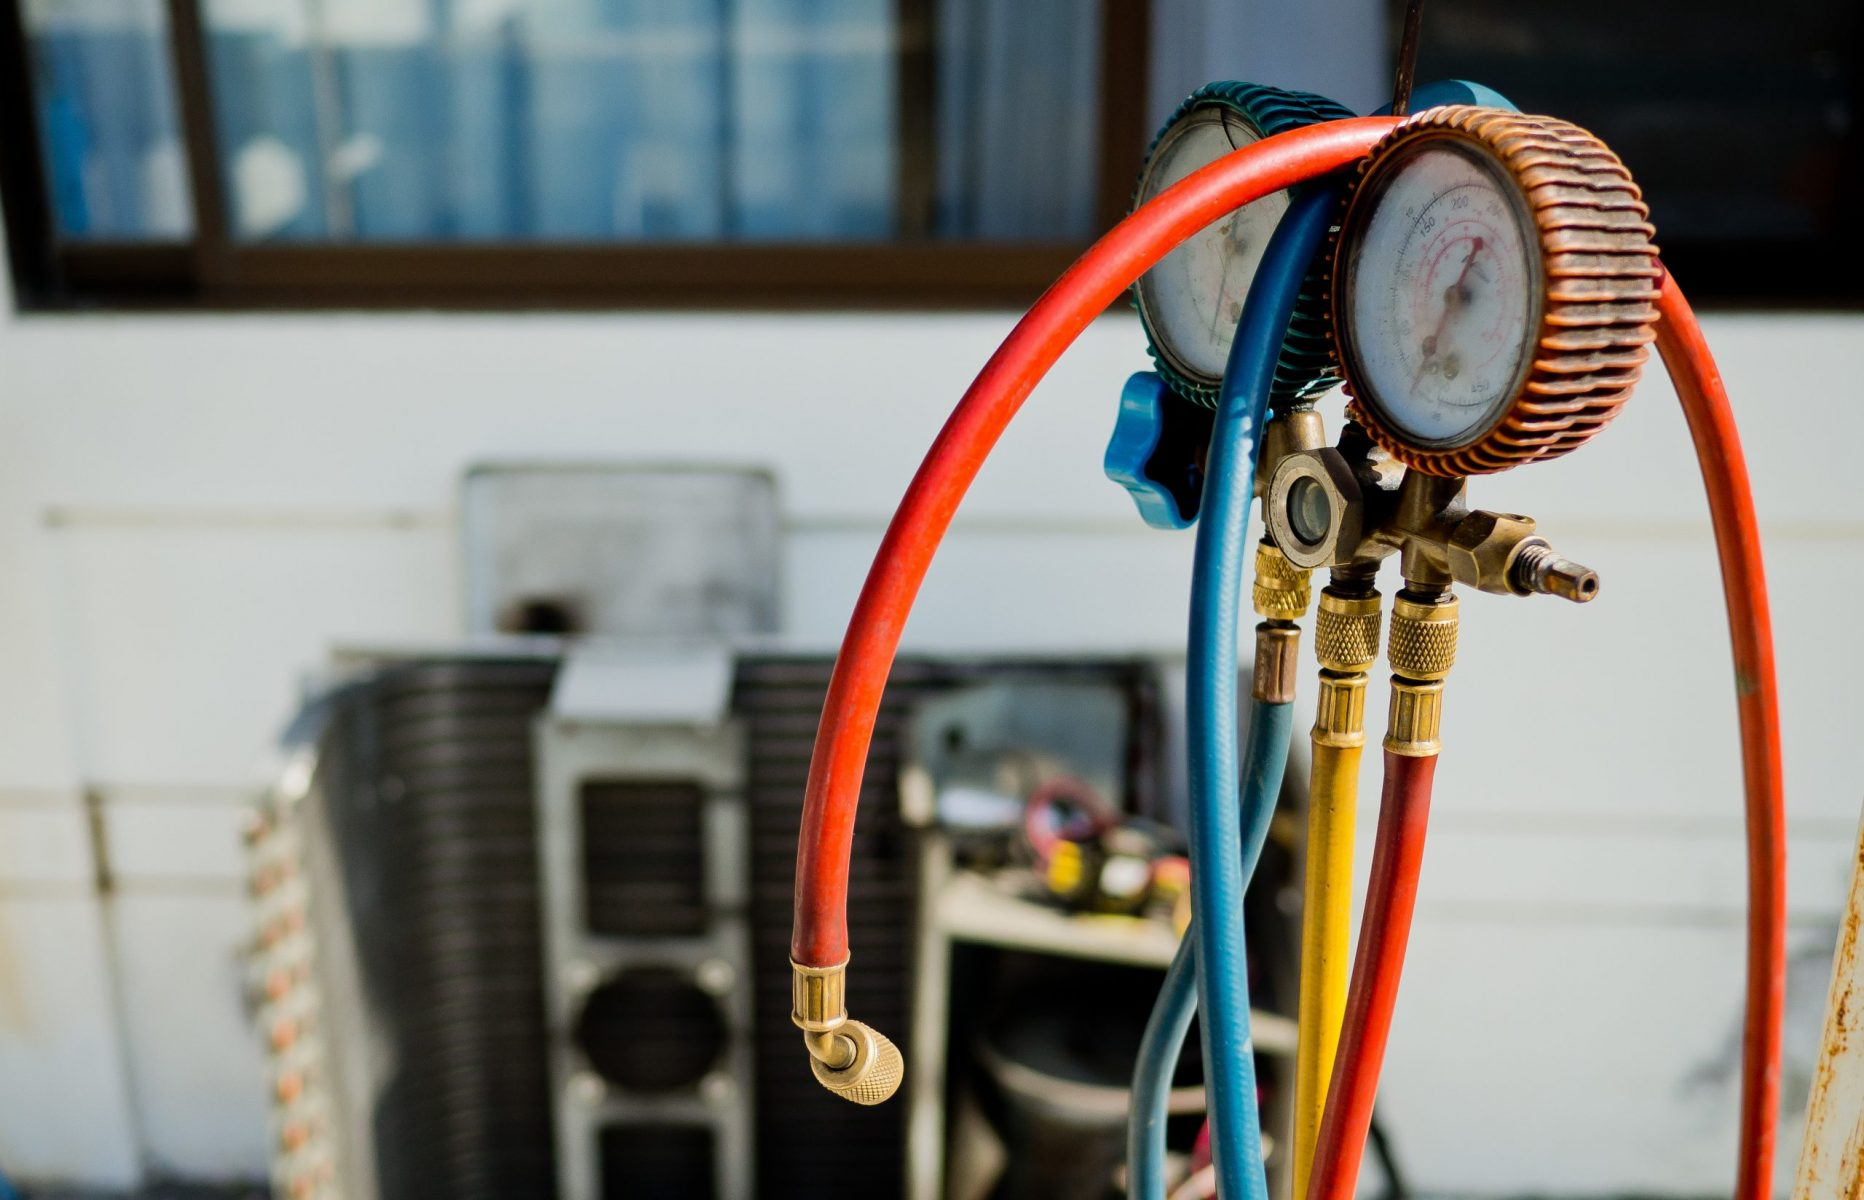 Furnace Troubleshooting Guide - Coyne College ChicagoCoyne College